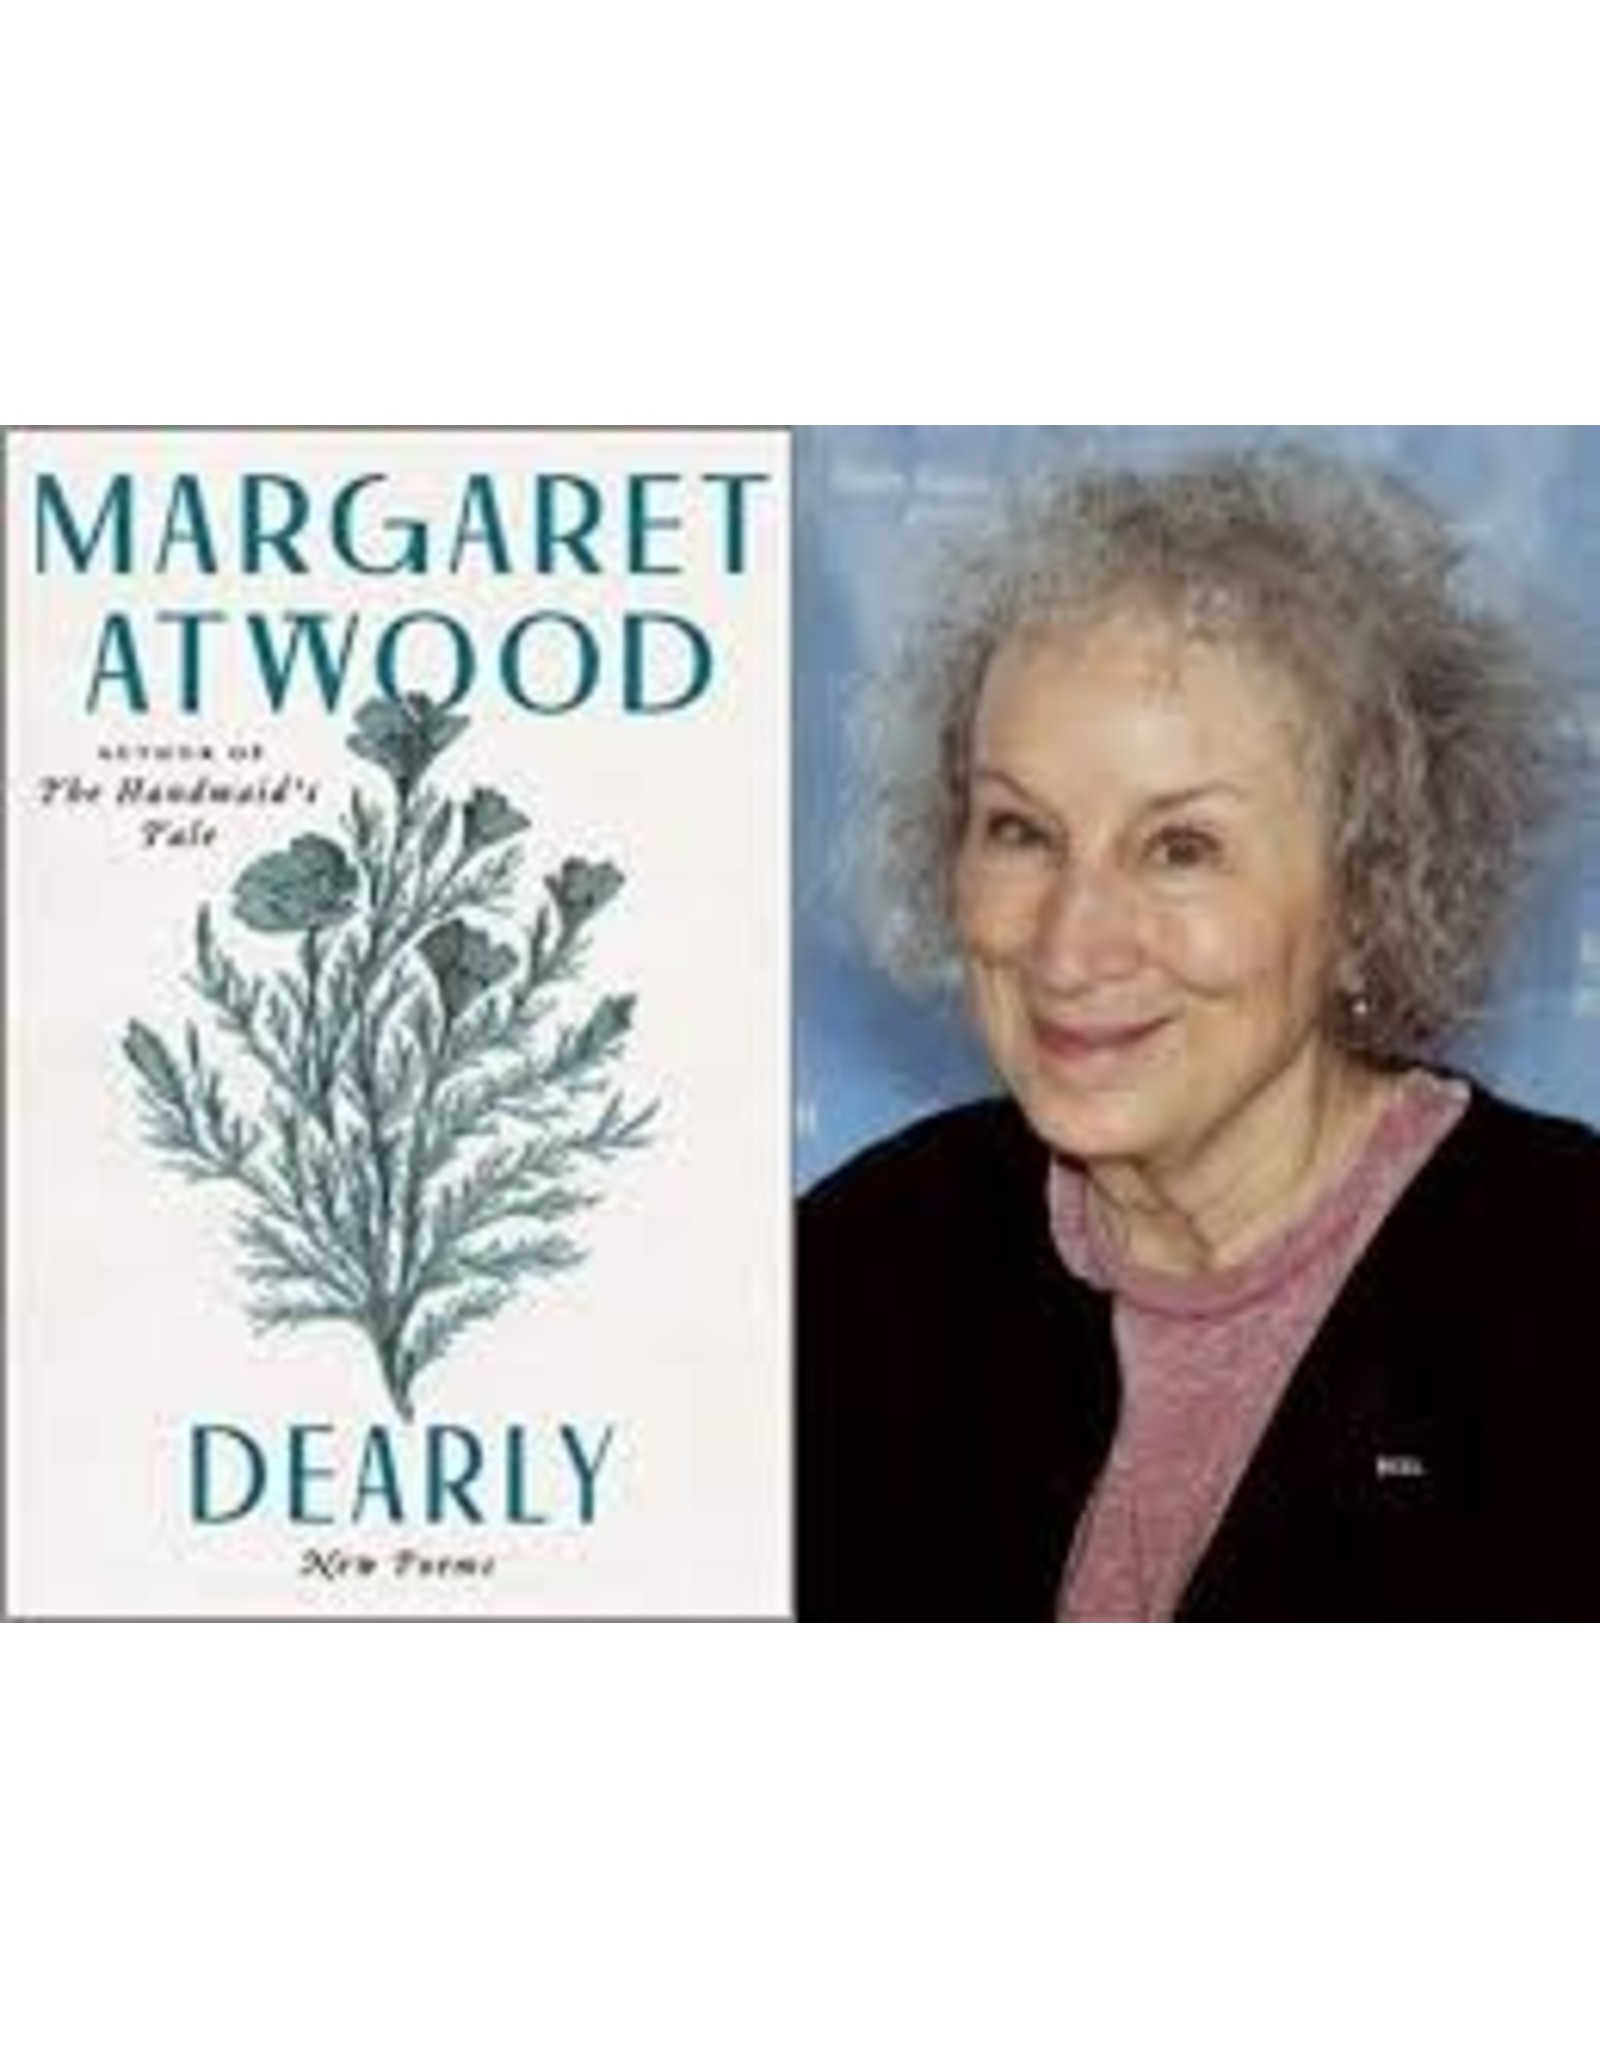 Books Dearly : New Poems by Margaret Atwood (Holiday Catalog)